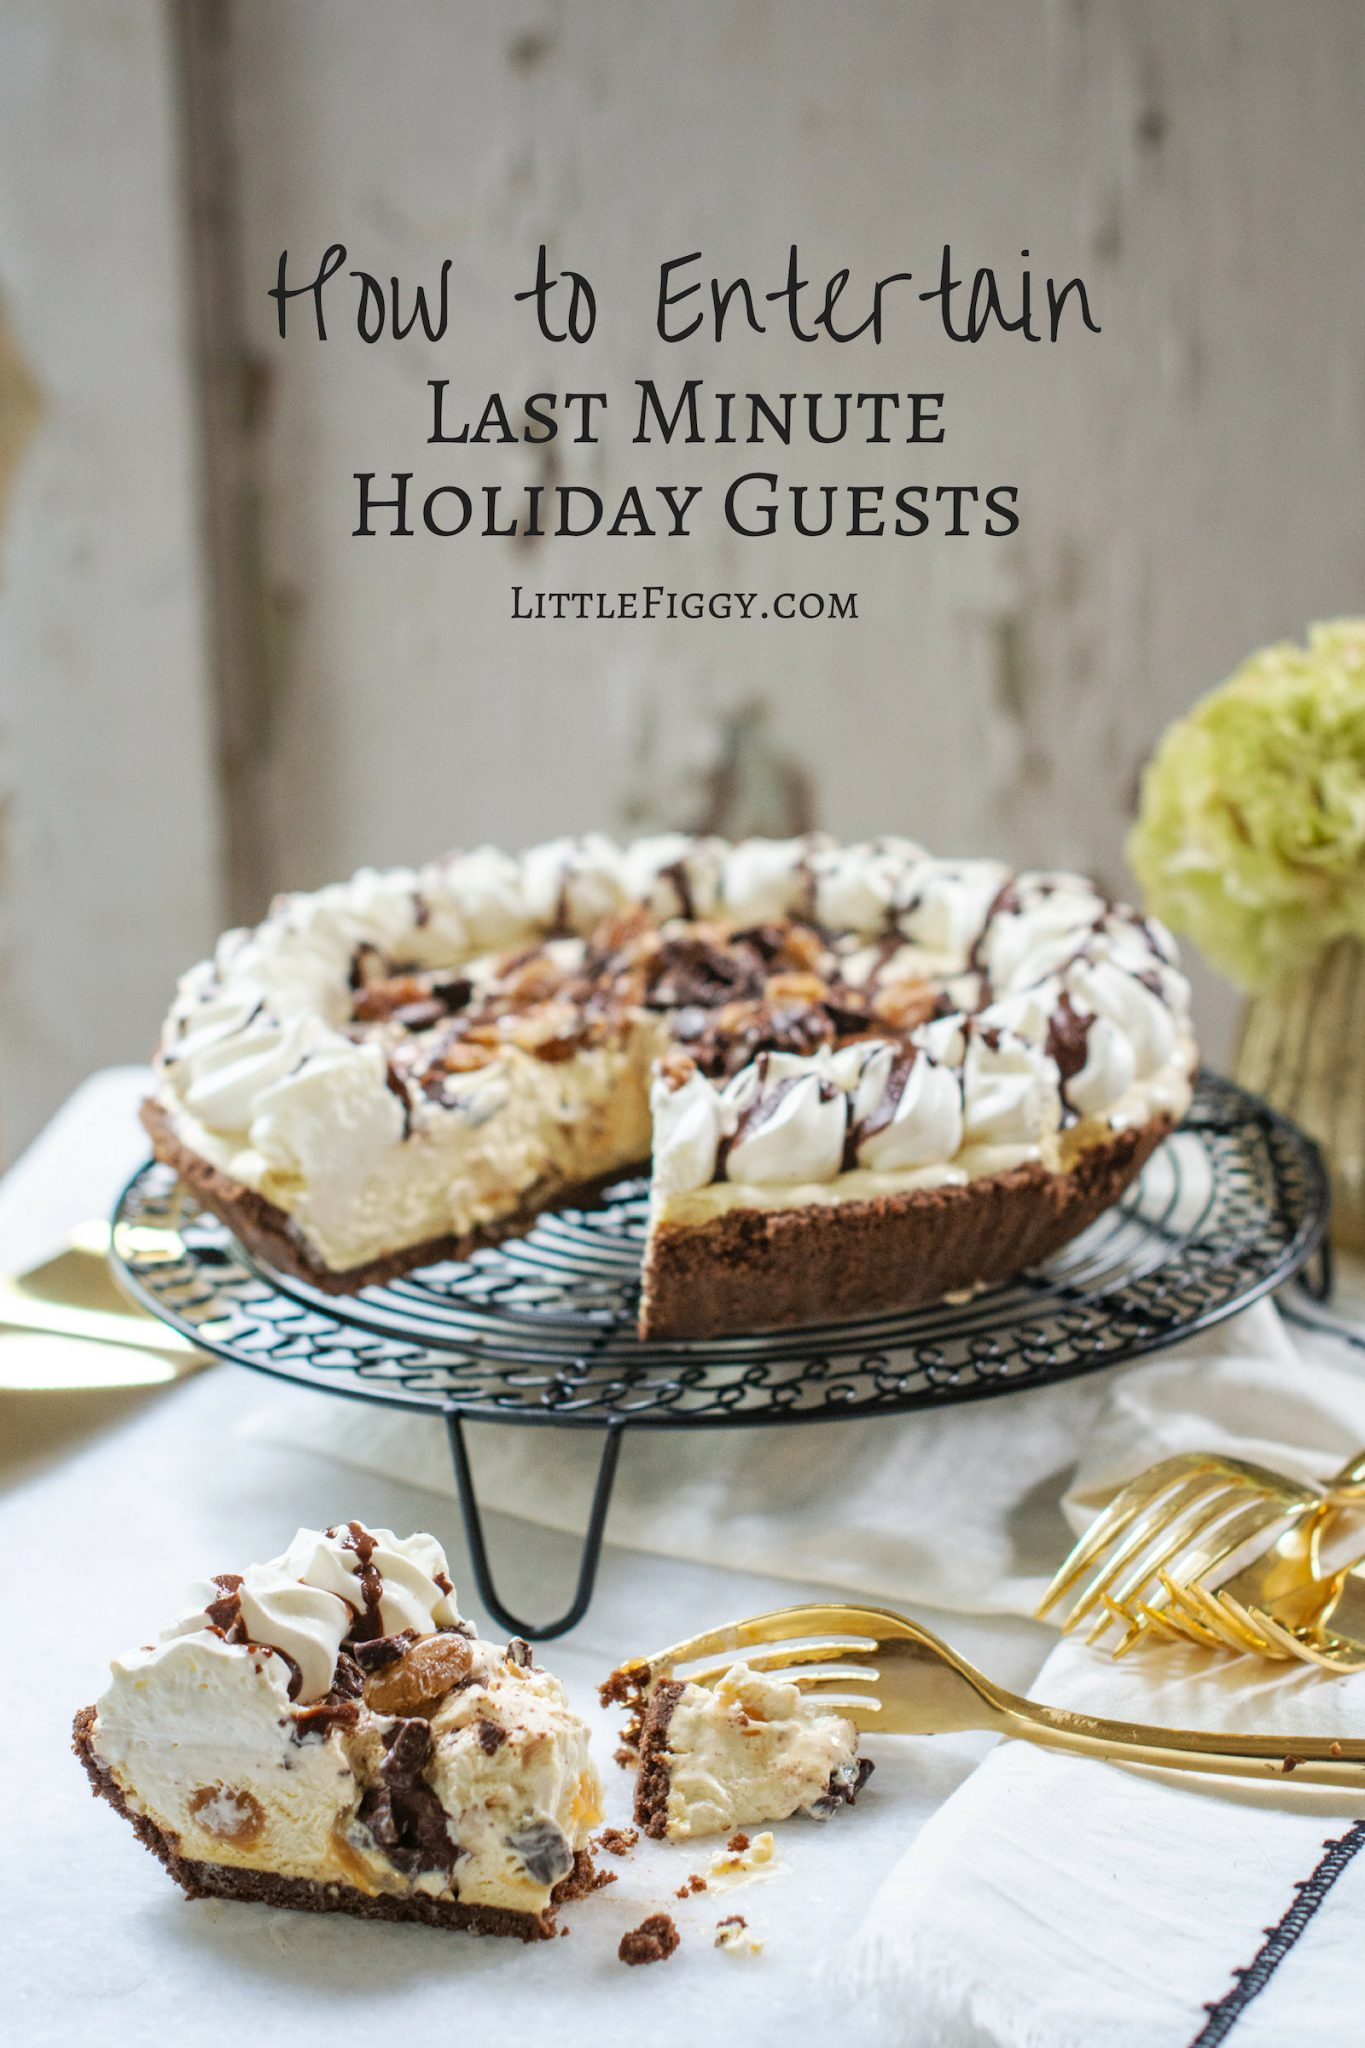 Entertain last minute holiday guests with @EdwardsDesserts! Learn more at Little Figgy Food.  #BringTheSweet #Edwards_Desserts #ad